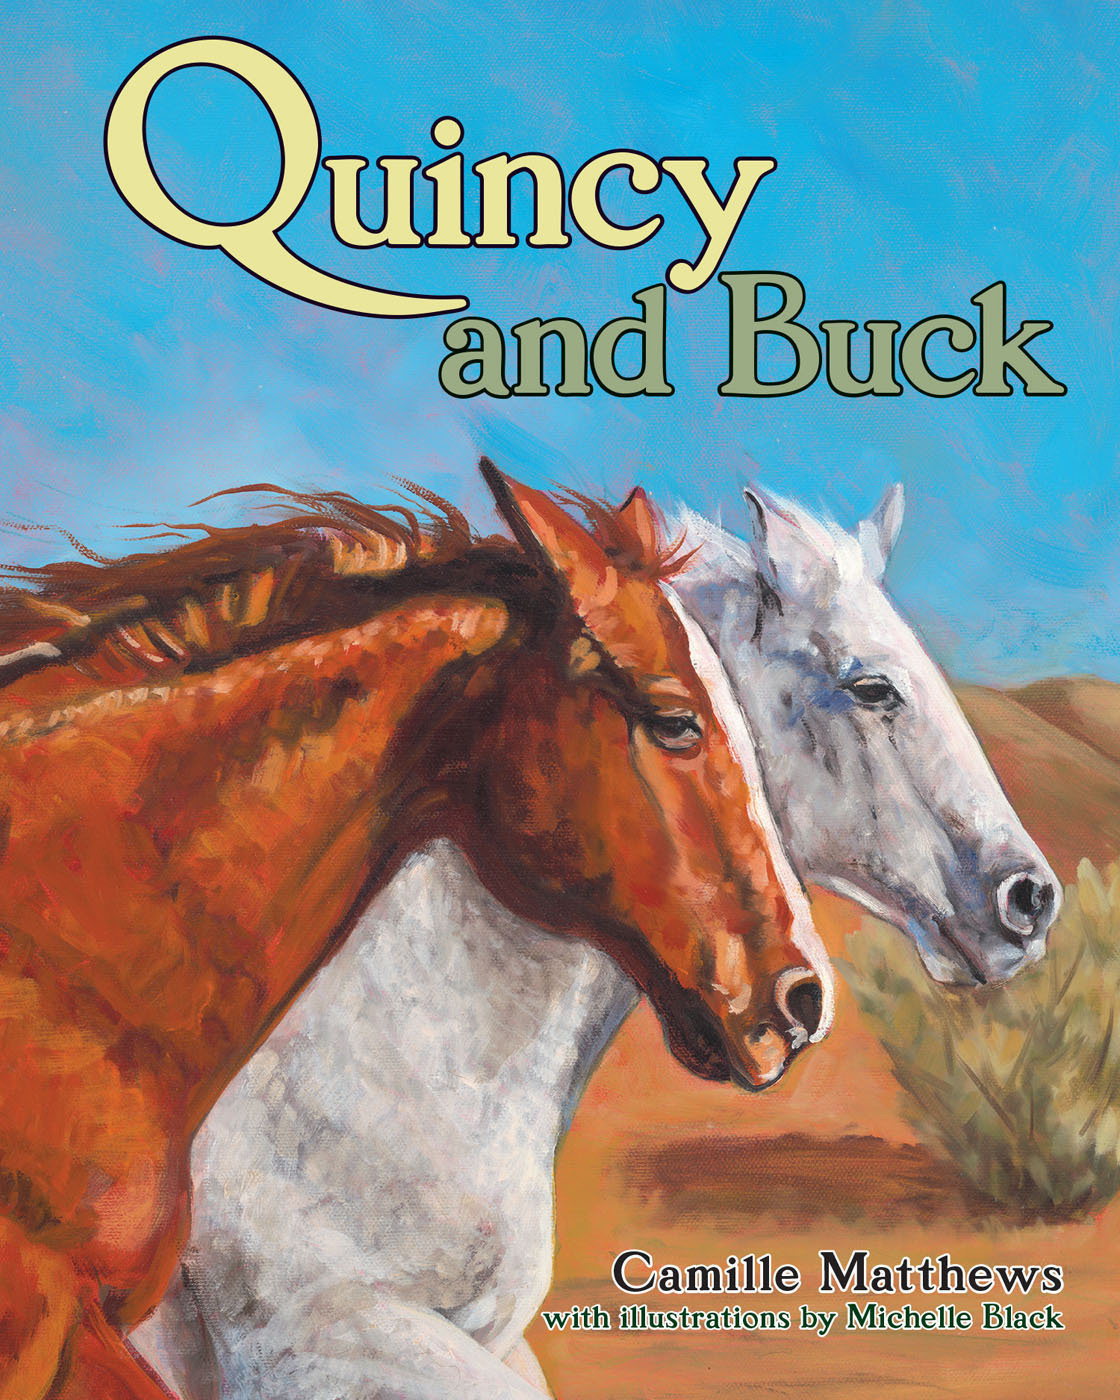 Pathfinder Equine Publications to Release QUINCY AND BUCK by Camille Matthews